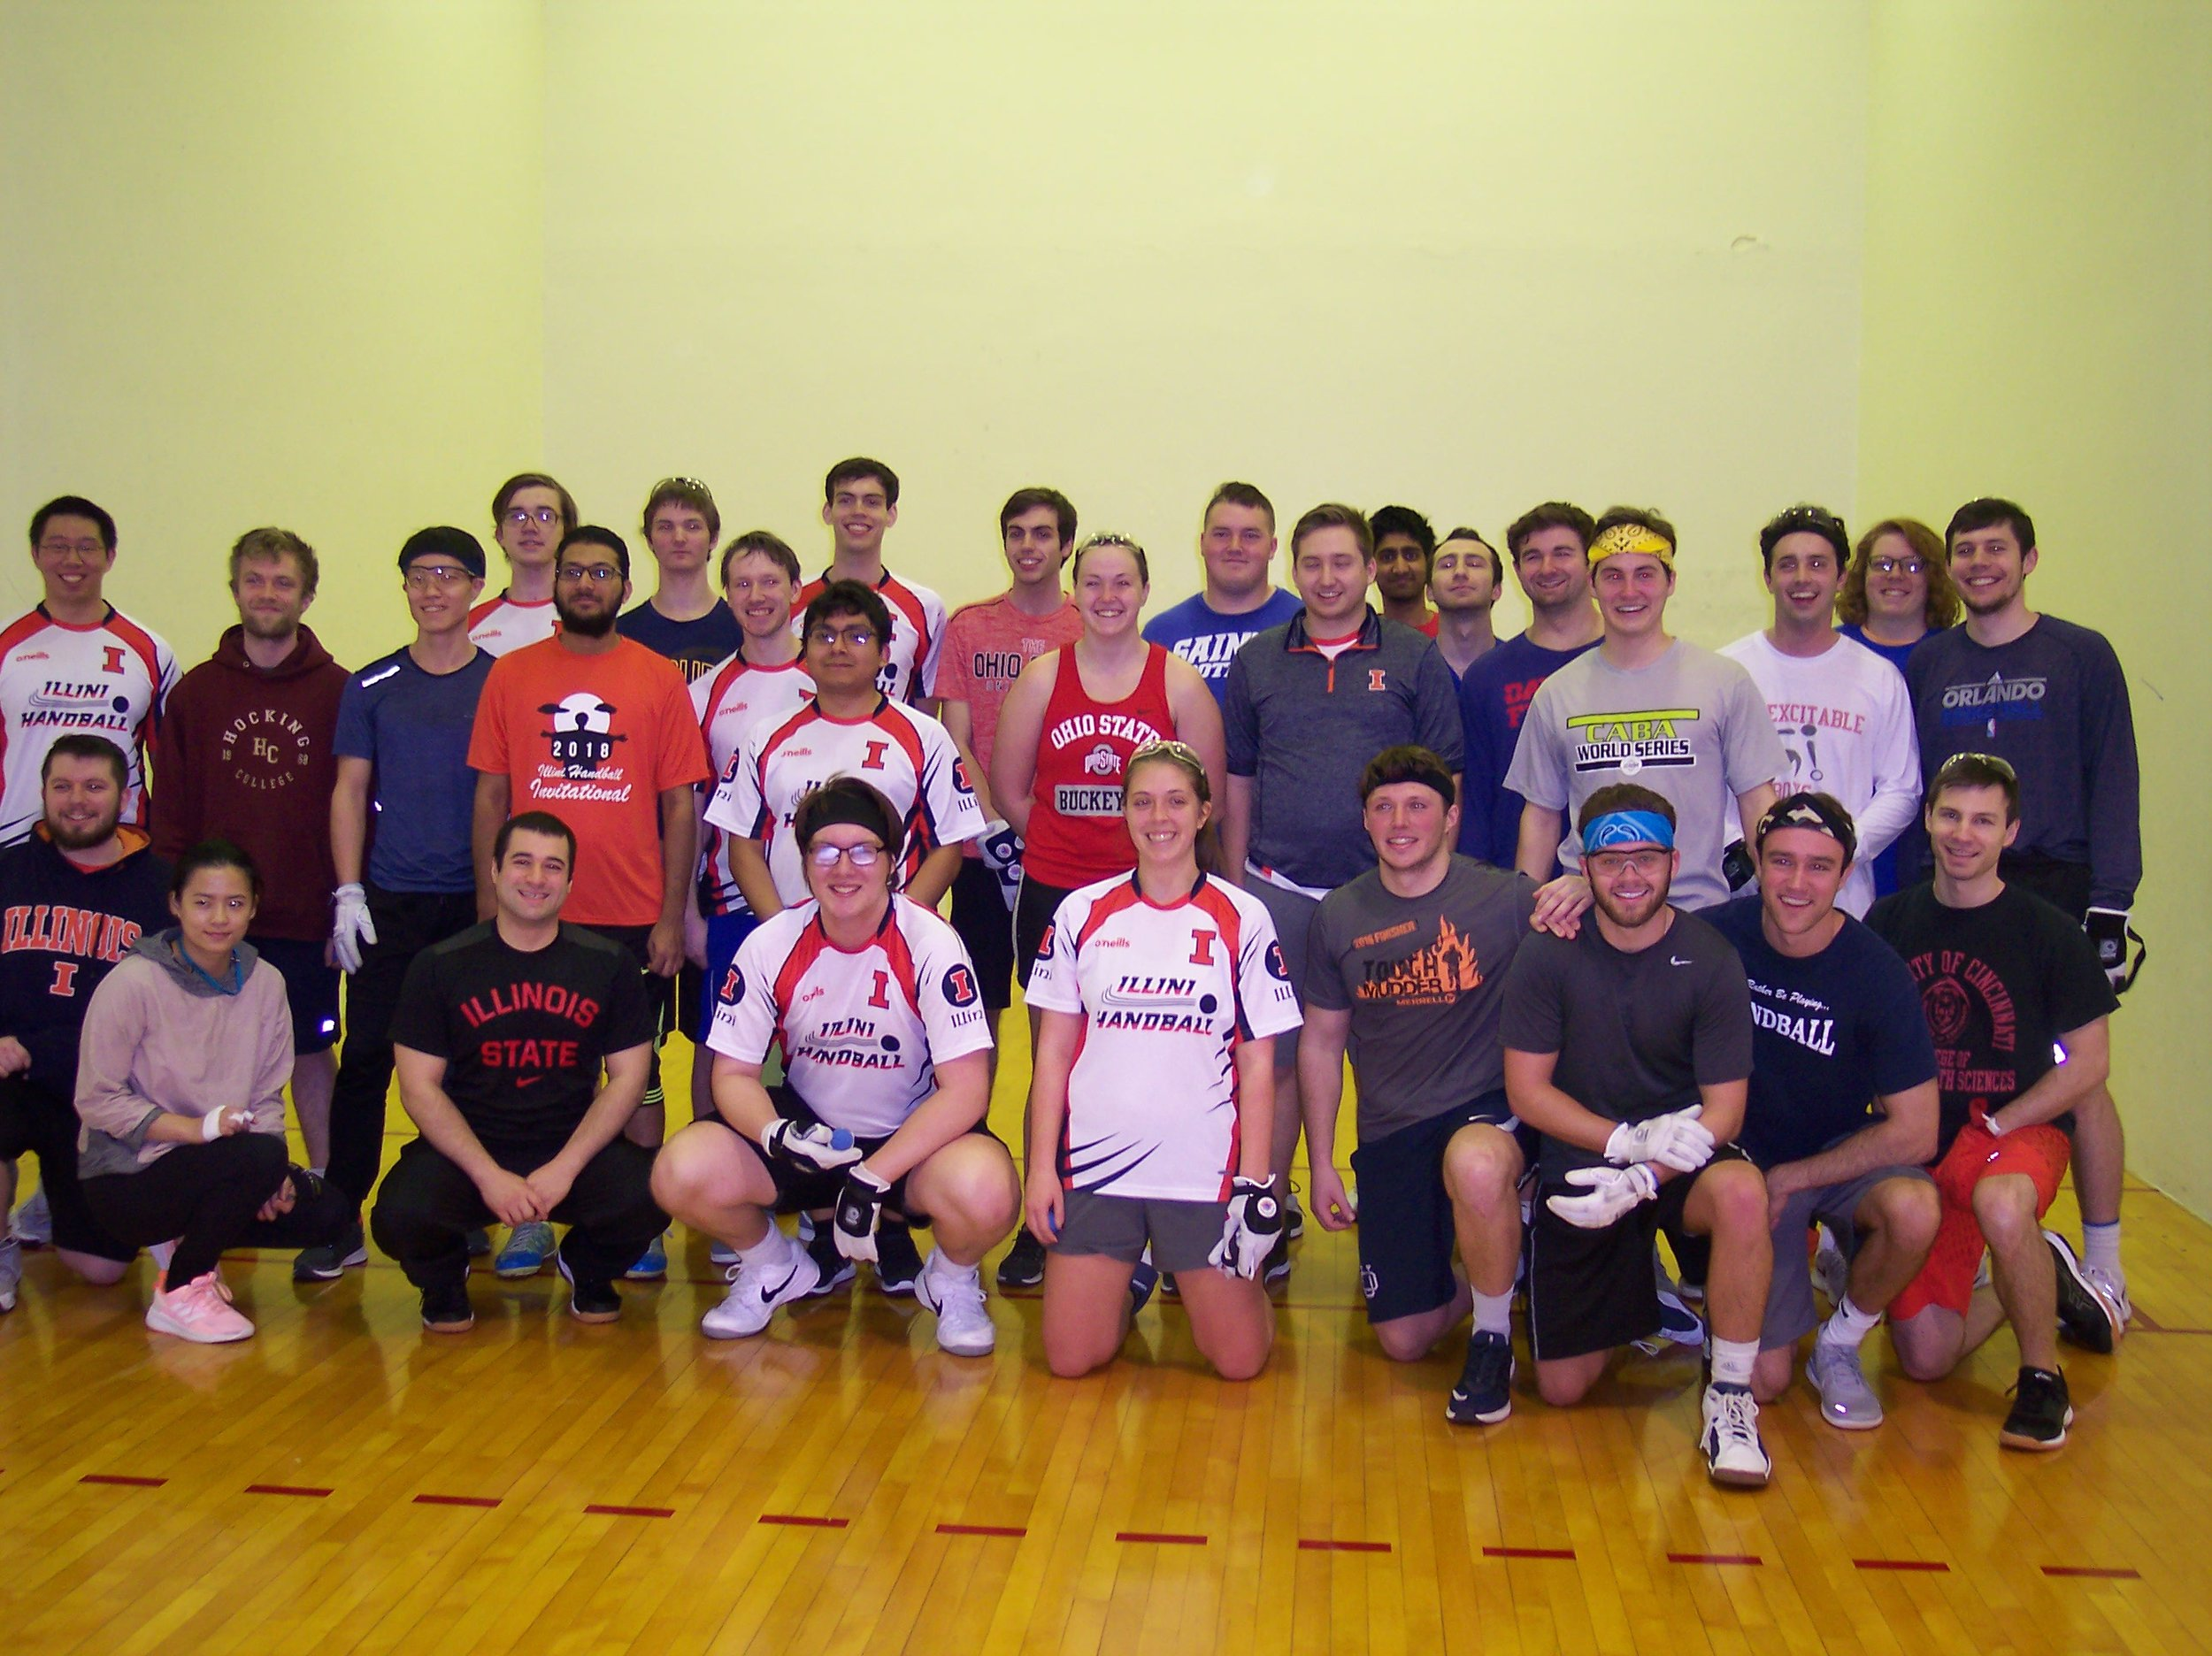 Collegiate Friendly Tournament (2-2-19) was a huge success with particpants from 7 colleges.